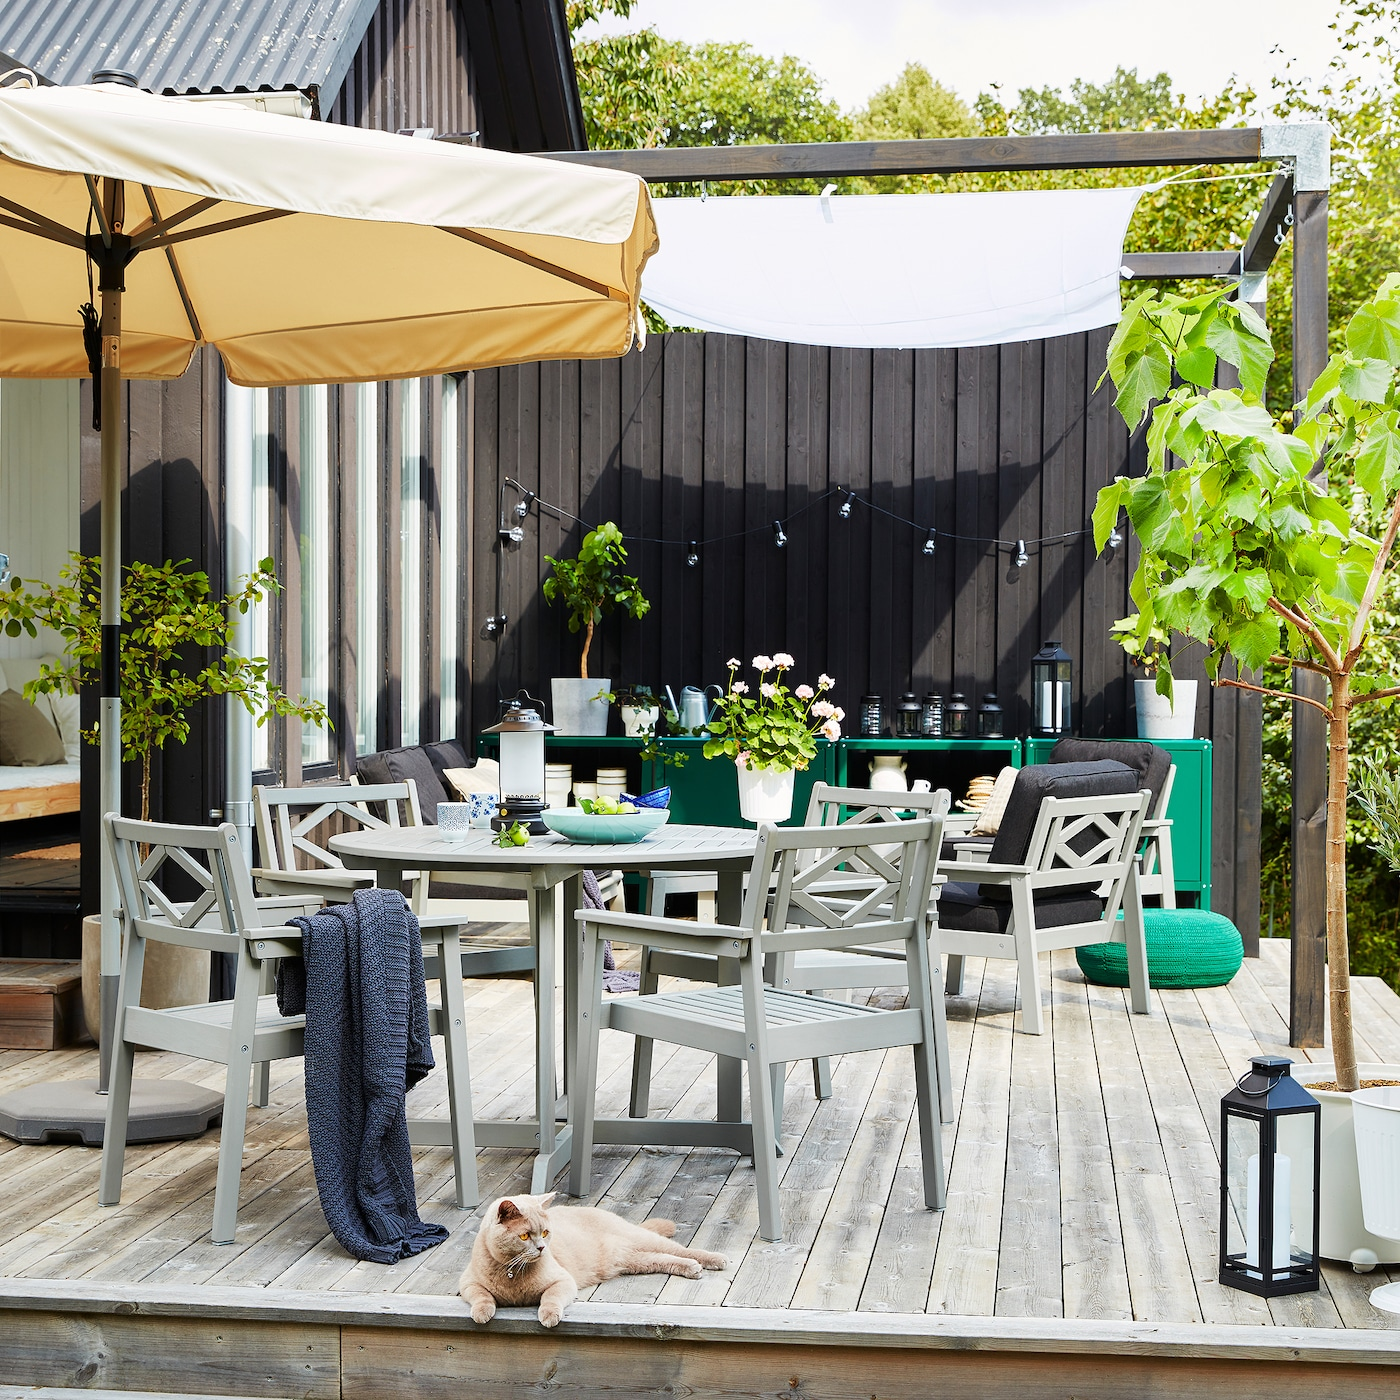 An outdoor space on a wooden deck with a beige parasol, grey outdoor furniture, green planted trees and a grey/orange cat.